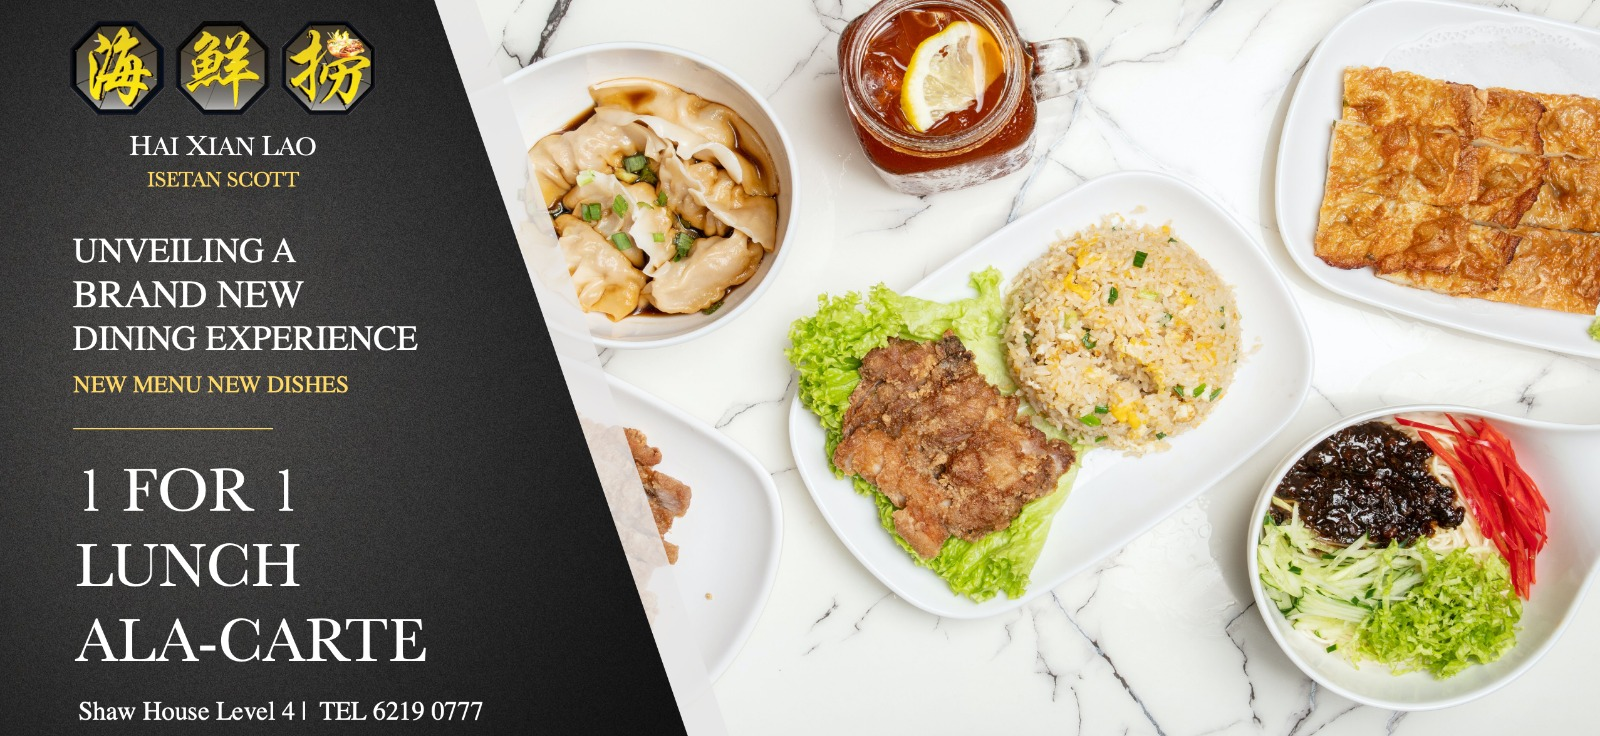 Hai Xian Lao 1 for 1 Asian Delicacies Ala-carte for Lunch (私房菜和鑊氣美食) | Why Not Deals & Promotions